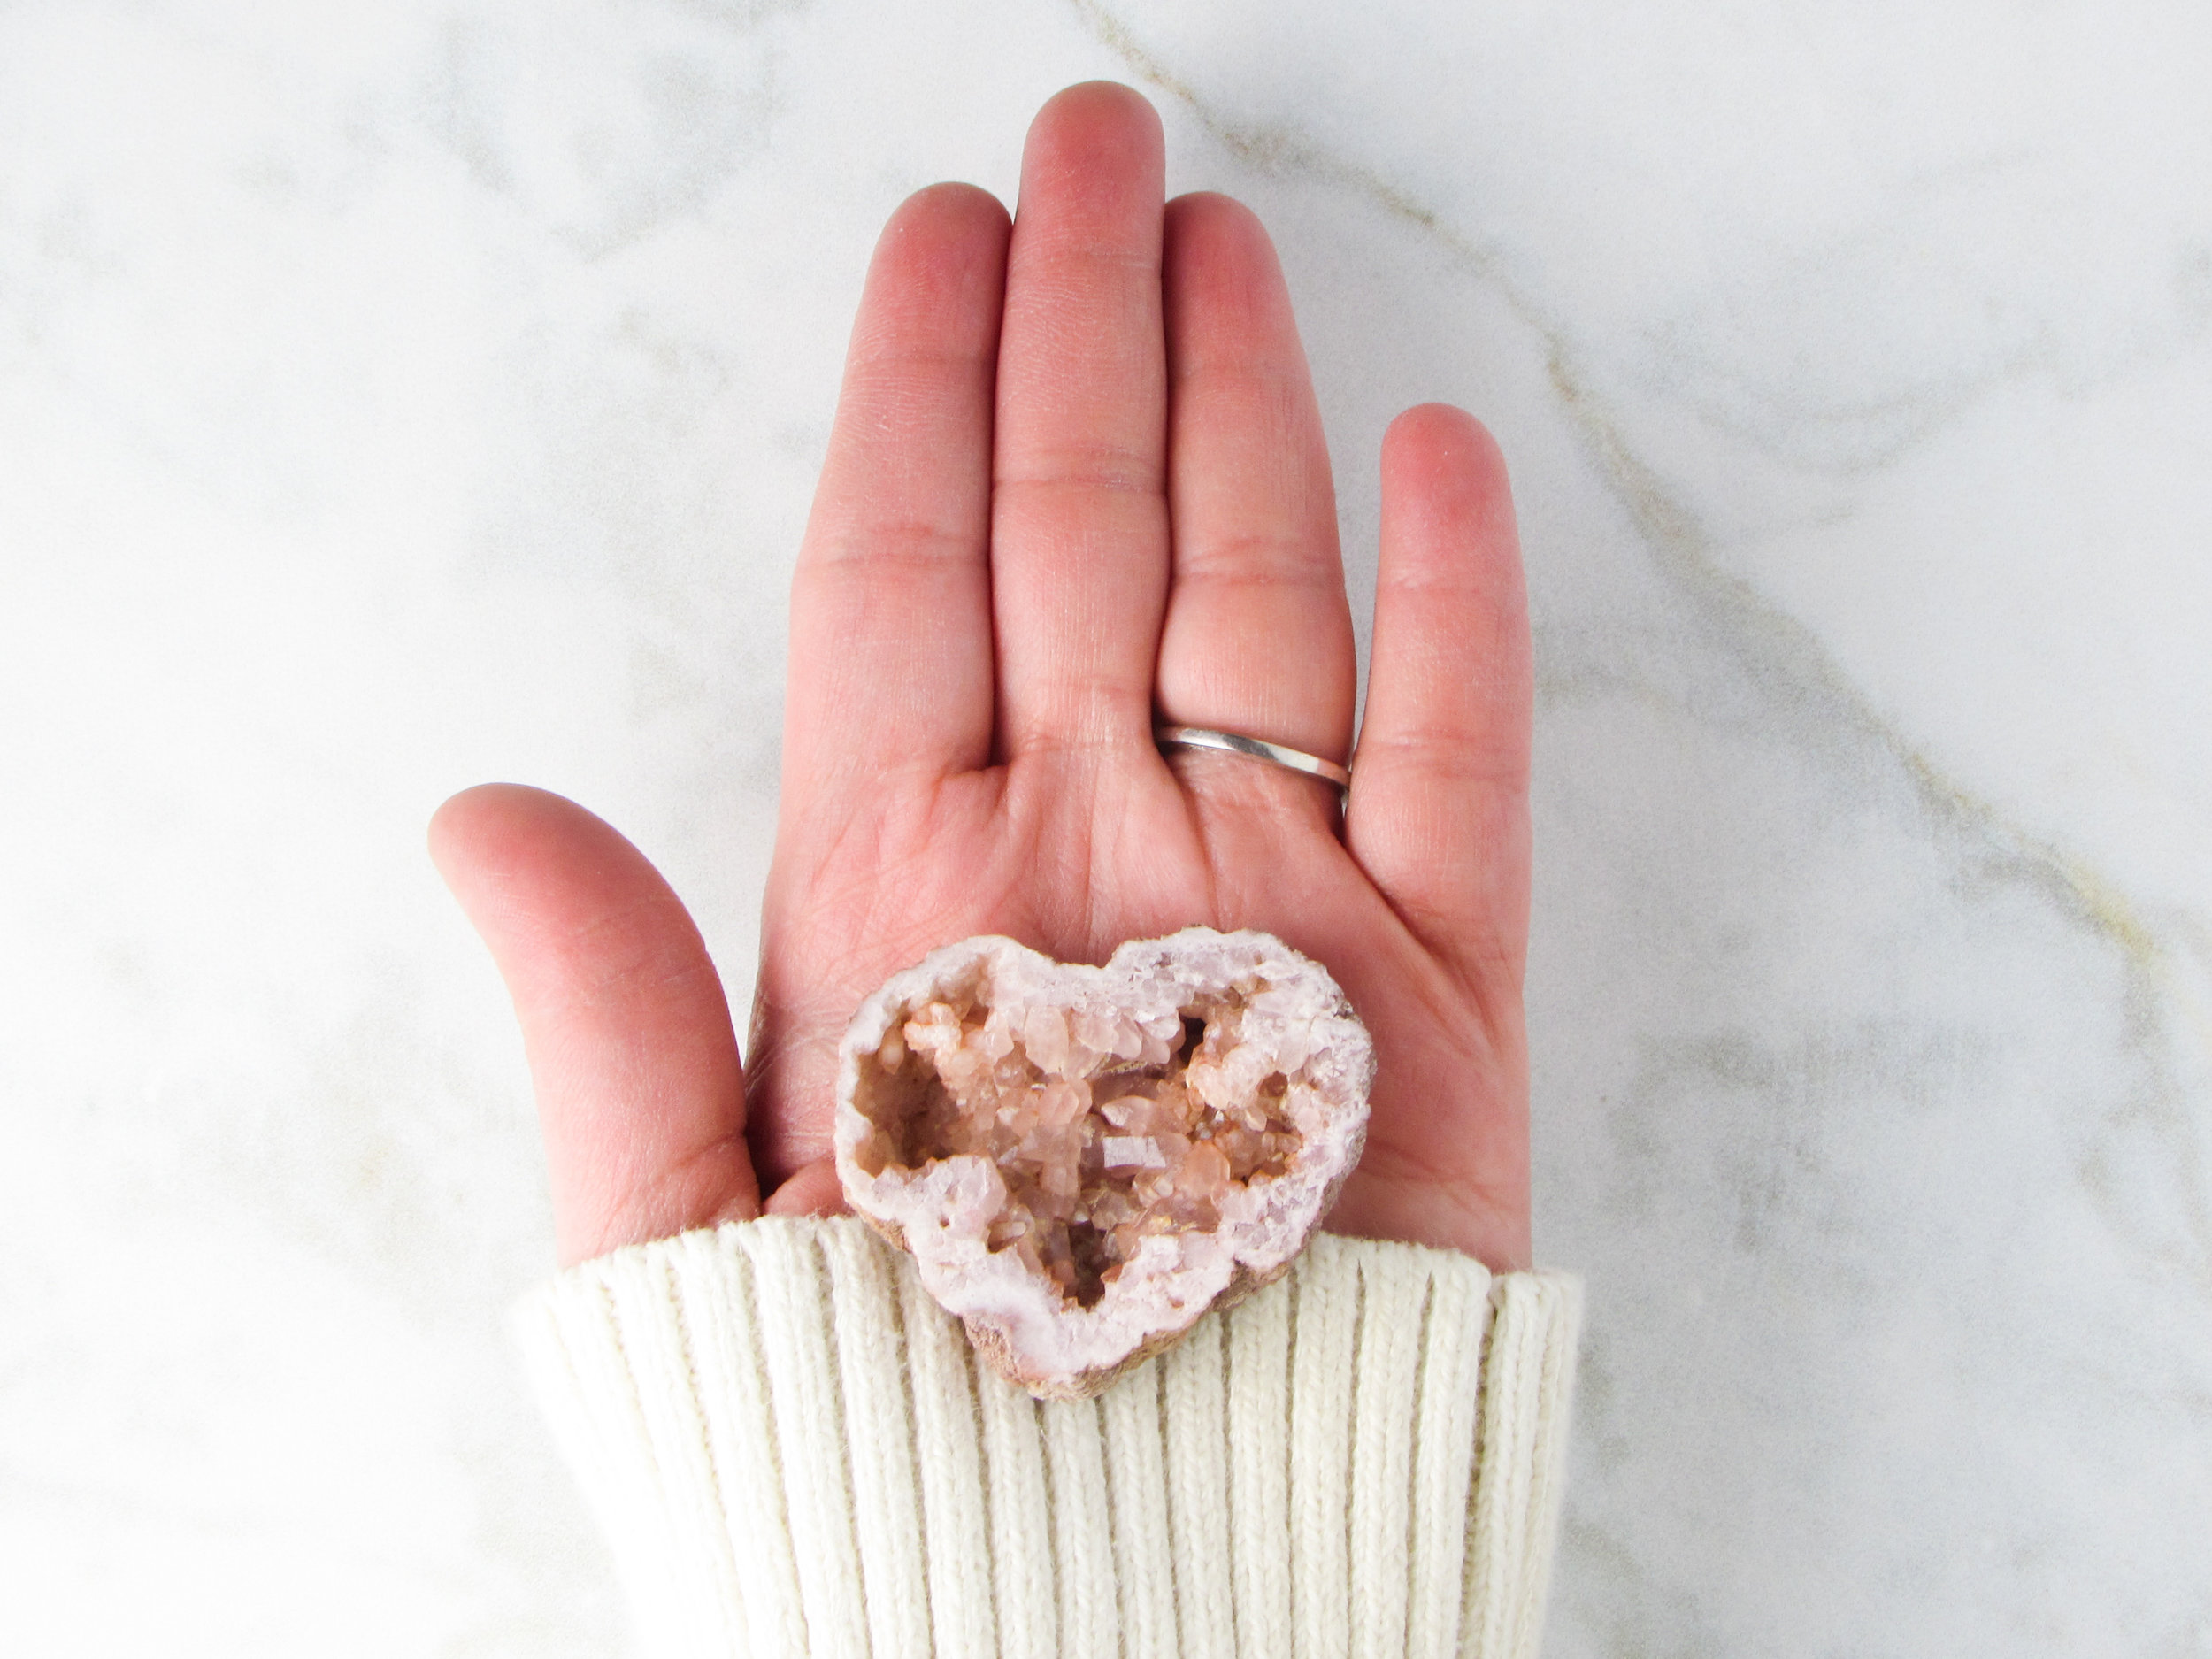 Pink amethyst to calm, soothe, and melt away anxieties